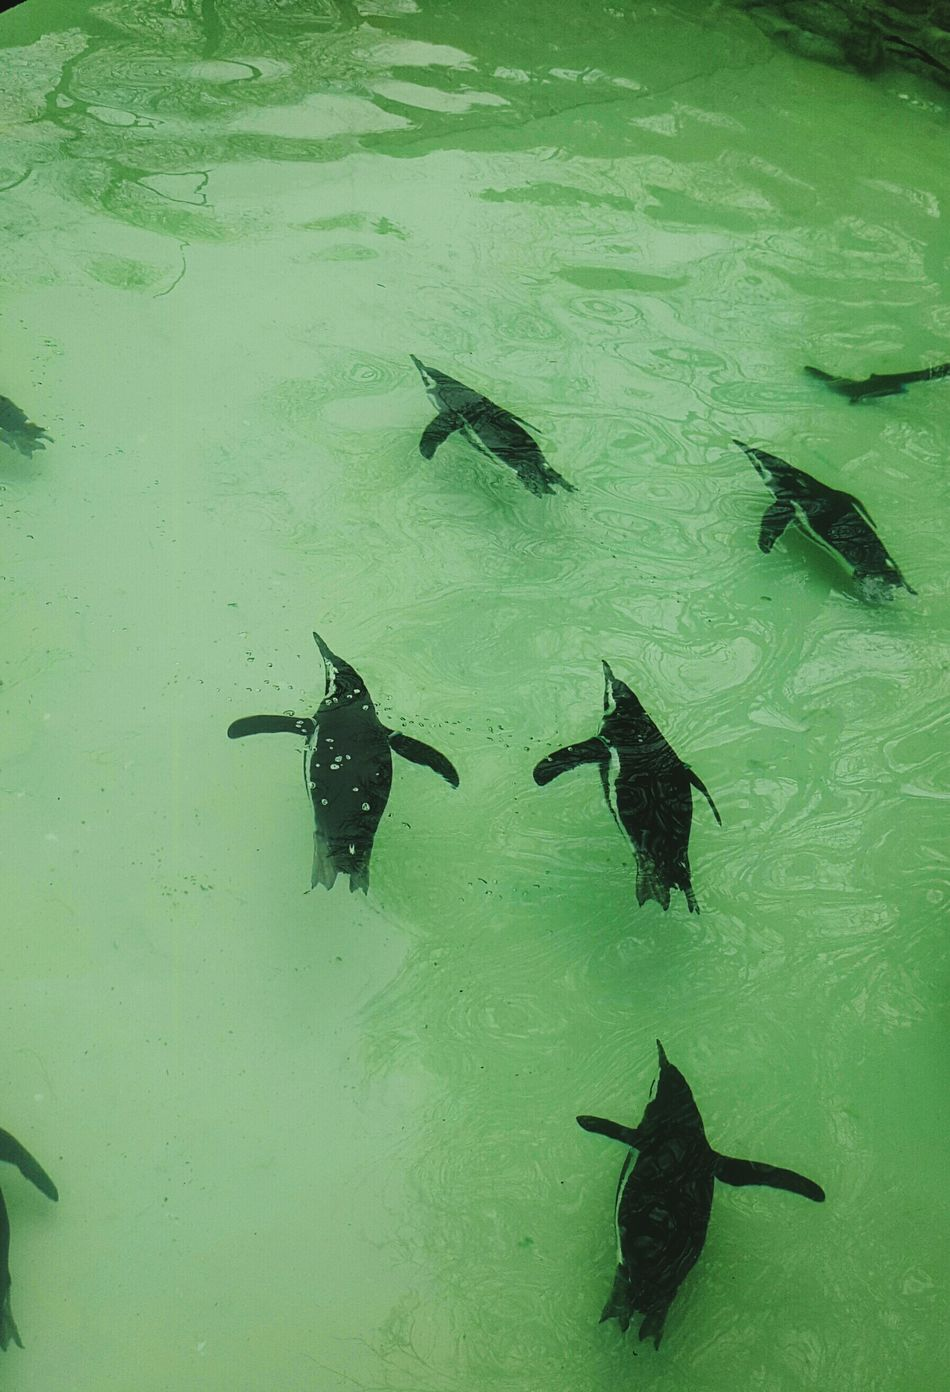 Penguins Green I Can Fly🙌 Water Animals Animal Photography